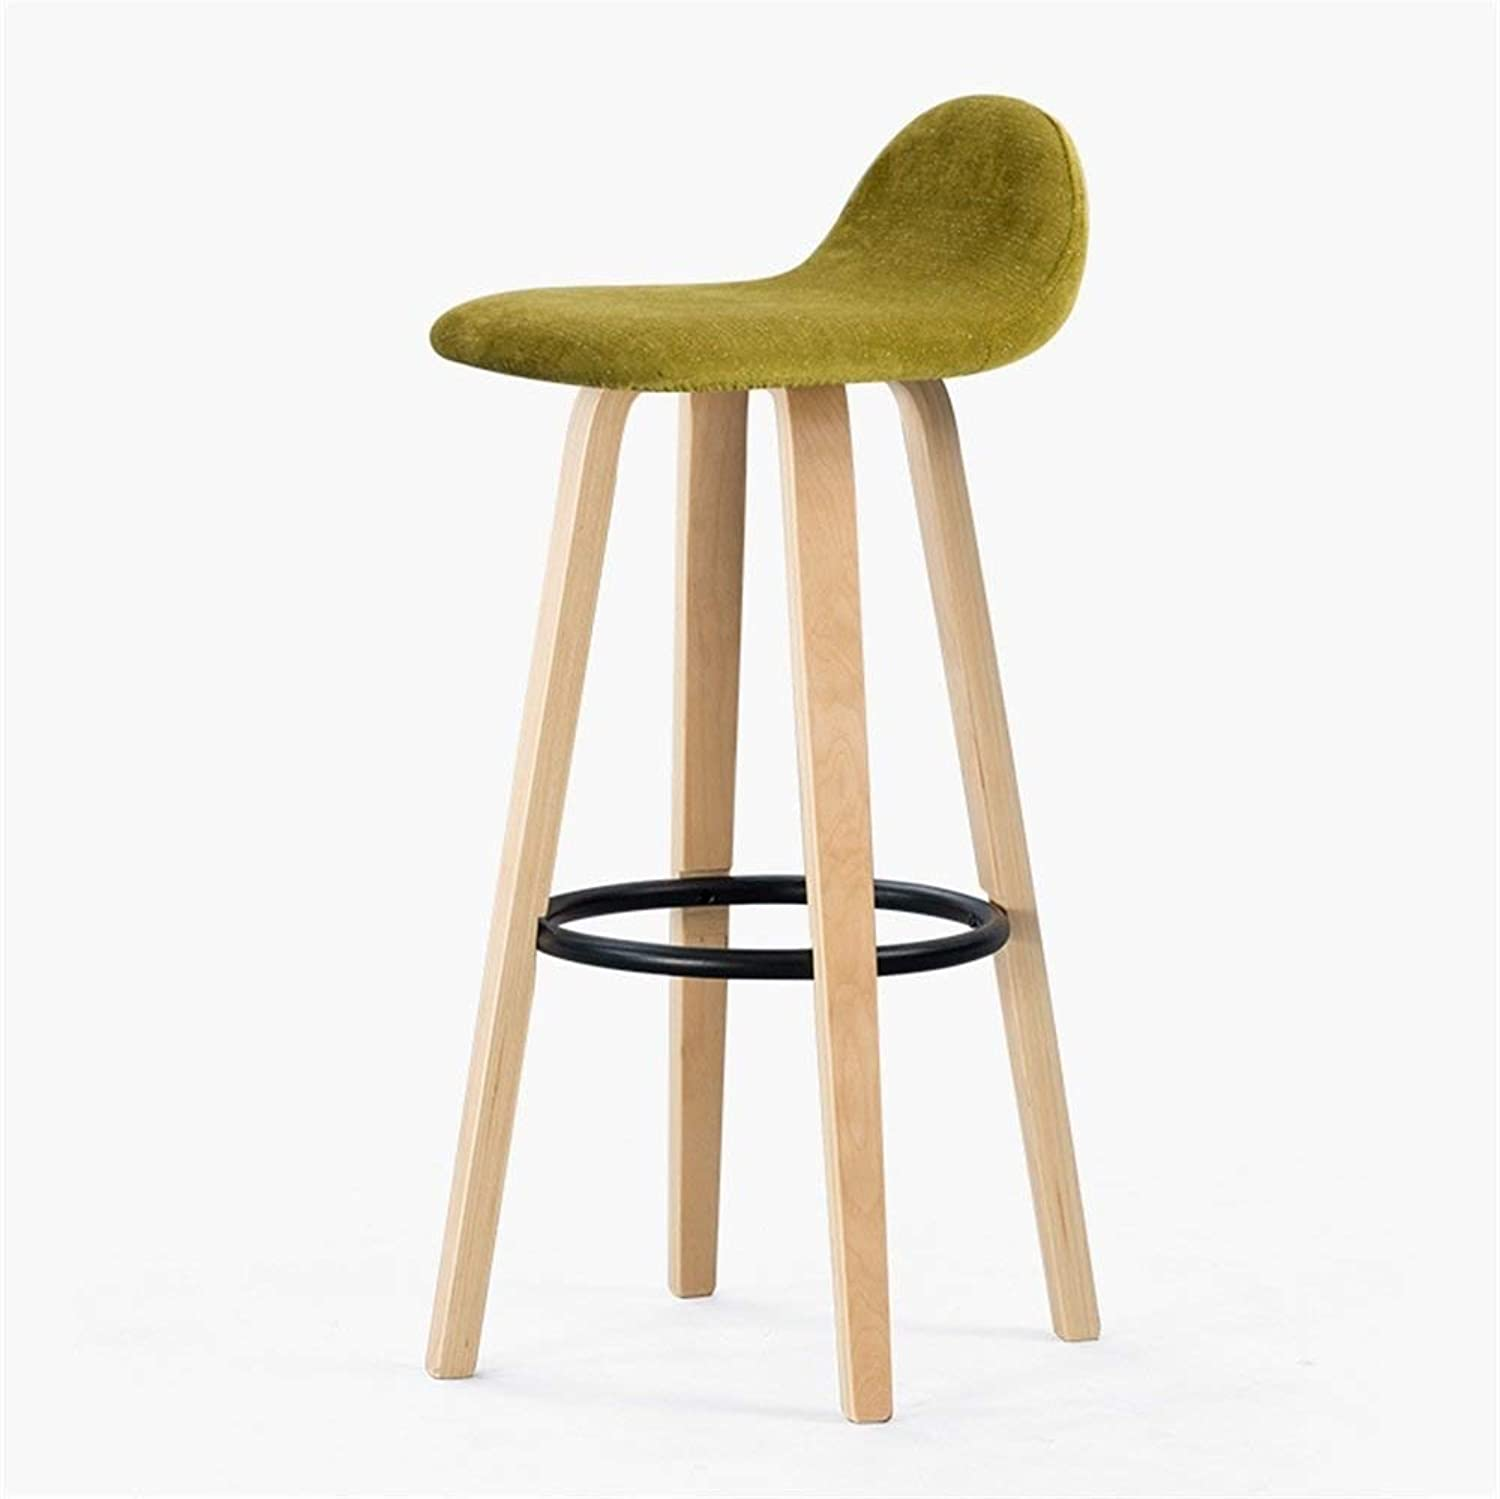 Bar Stool with Backrest Seat, Bar Kitchen Counter Height, Solid Wood Wrought Iron Vintage Linen Seat Cover (Wood color Wrought Iron Yellow Green)